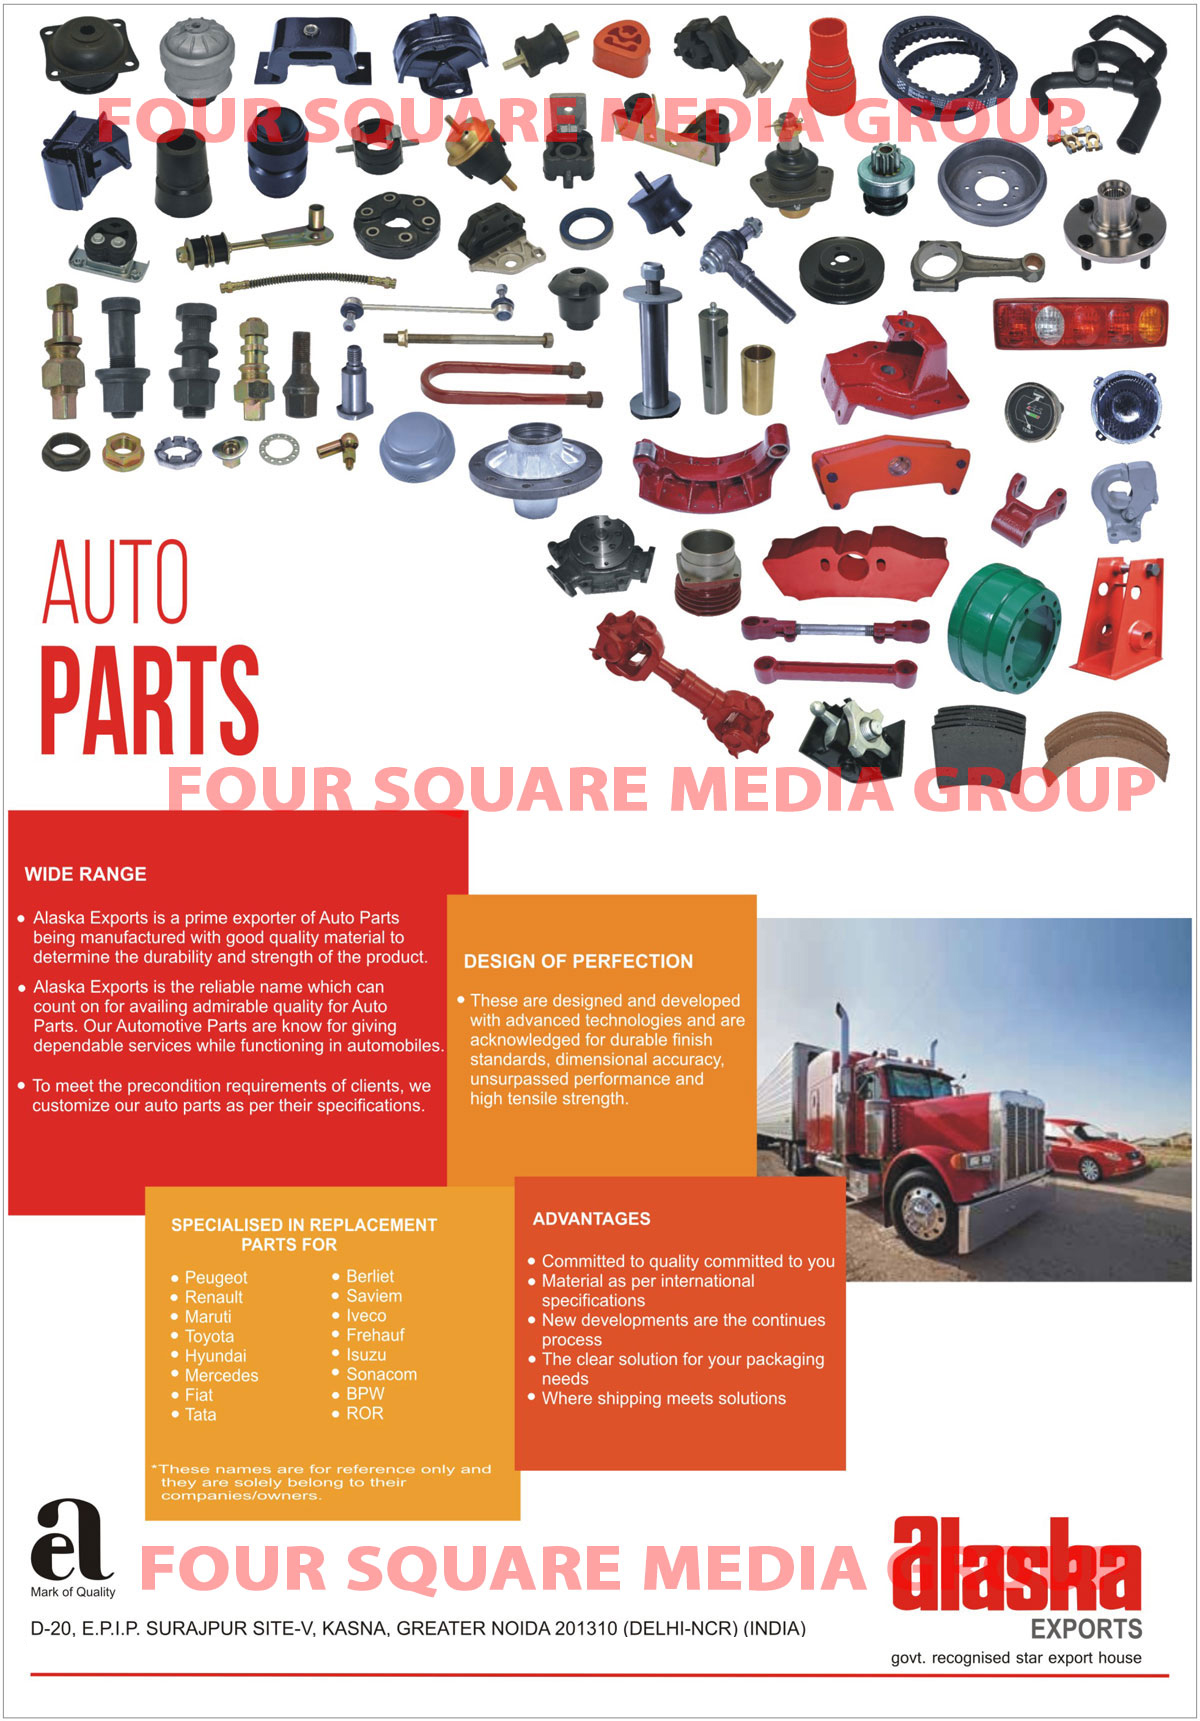 Tractor Parts, Combine Parts, Automotive Parts, Automotive Spare Parts,Agriculture Parts, Rubber Products, Bearings, Belts, Brake Lining, Bushes, Clutch, Connecting Rod, Control Cables, Electrical Parts, Engine Mountings, Engine Parts, Fastners, Filters, Gears, Hoses, CV Joint, Stearing Boots, Oil Seals, Suspension Parts, Radiator Caps, Leap Springs, Lights, V Belts, Conveyor Belting, Rubber Sheets, Rubber Transmission Belting Tread, Automotive Replacement Parts, Car Replacement Parts, Truck Replacement Parts, Trailer Replacement Parts, Cultivator Parts, Harvester Parts, Cultivator Gears, Tractor Gears, Harvester Gears, Cultivator Sprockets, Tractor Sprockets, Harvester Sprockets